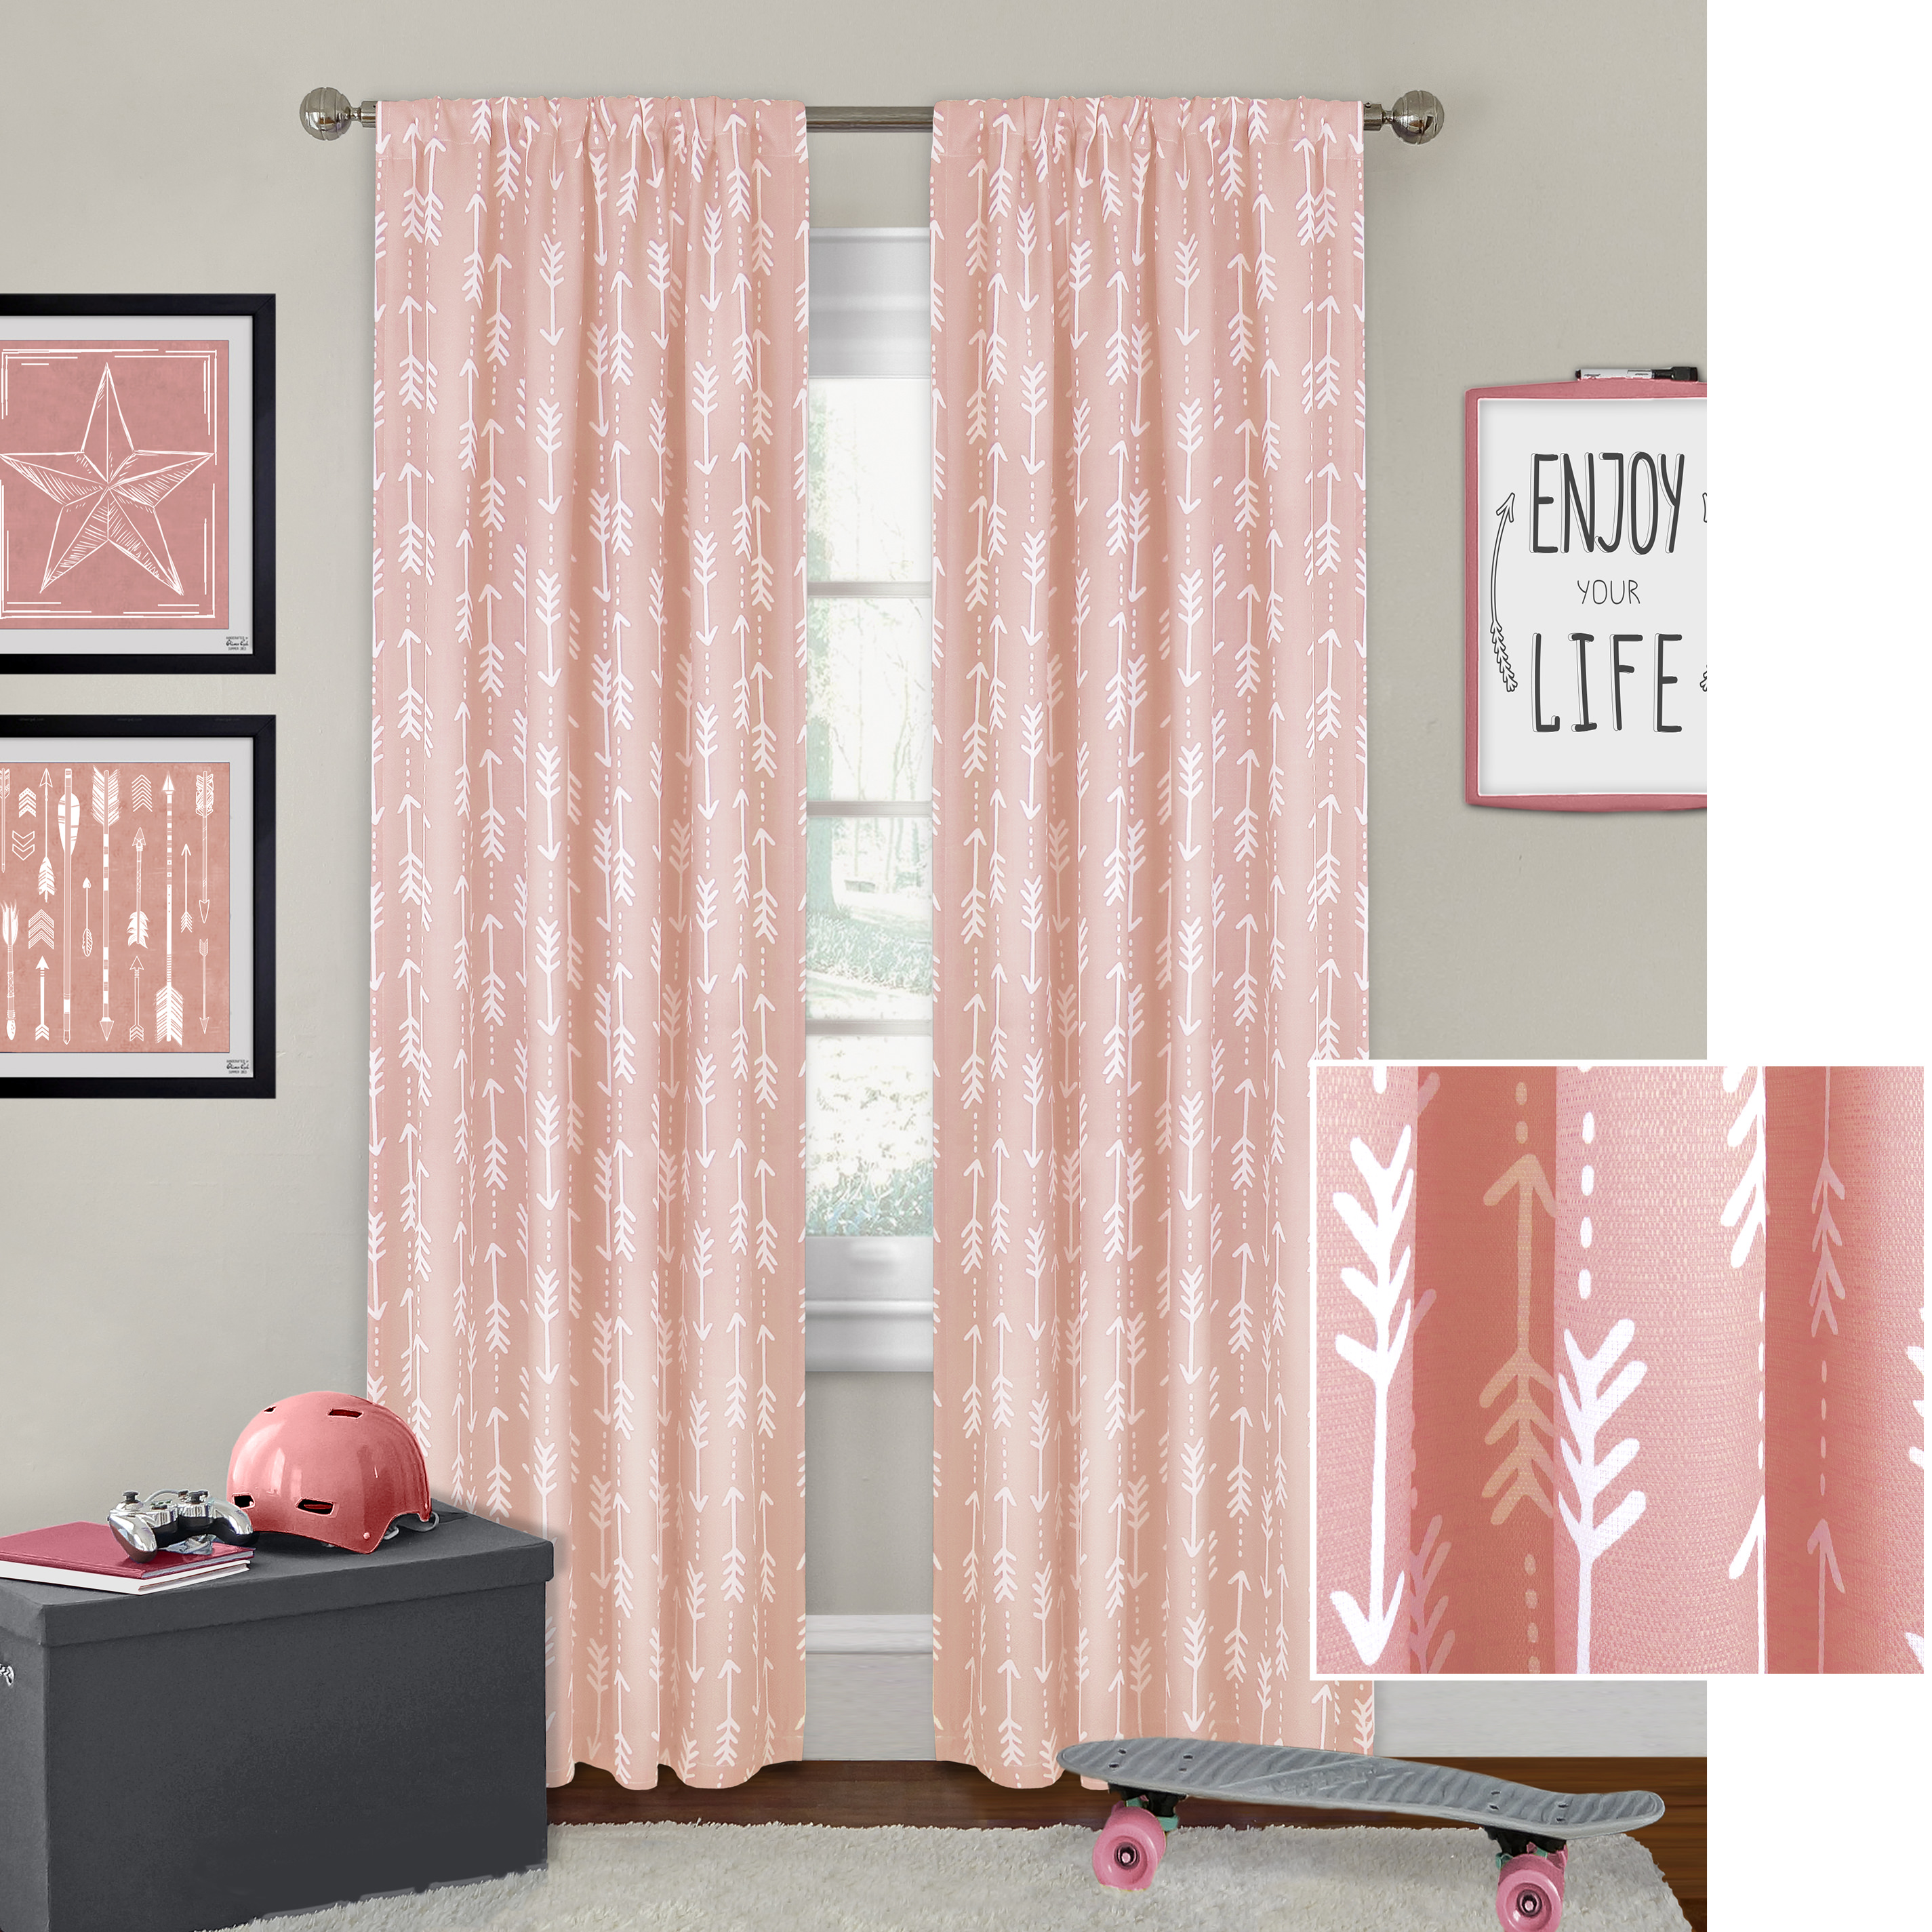 Better Homes & Gardens Arrows Curtain Panel